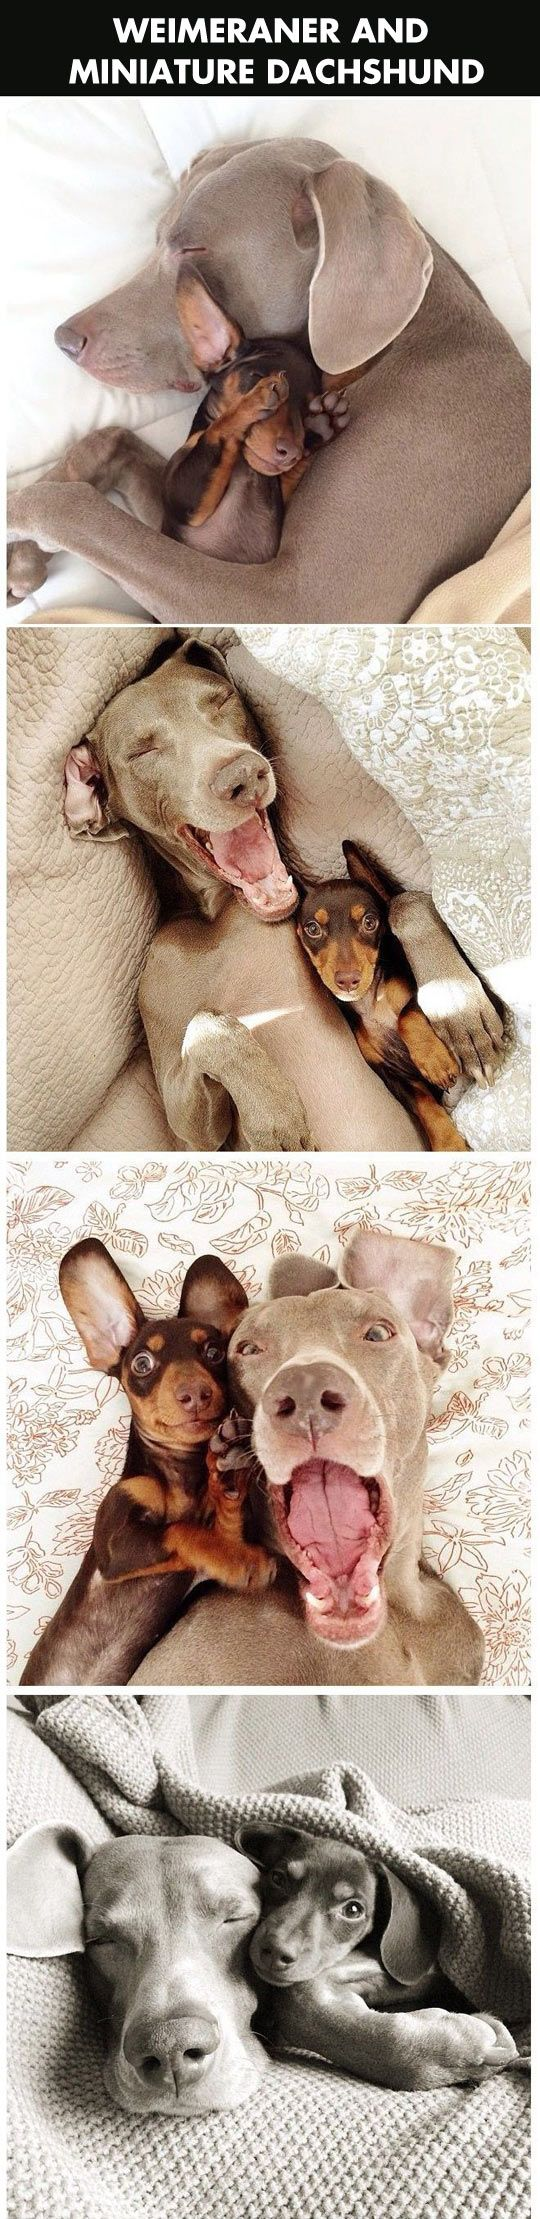 Two dogs will melt your heart.